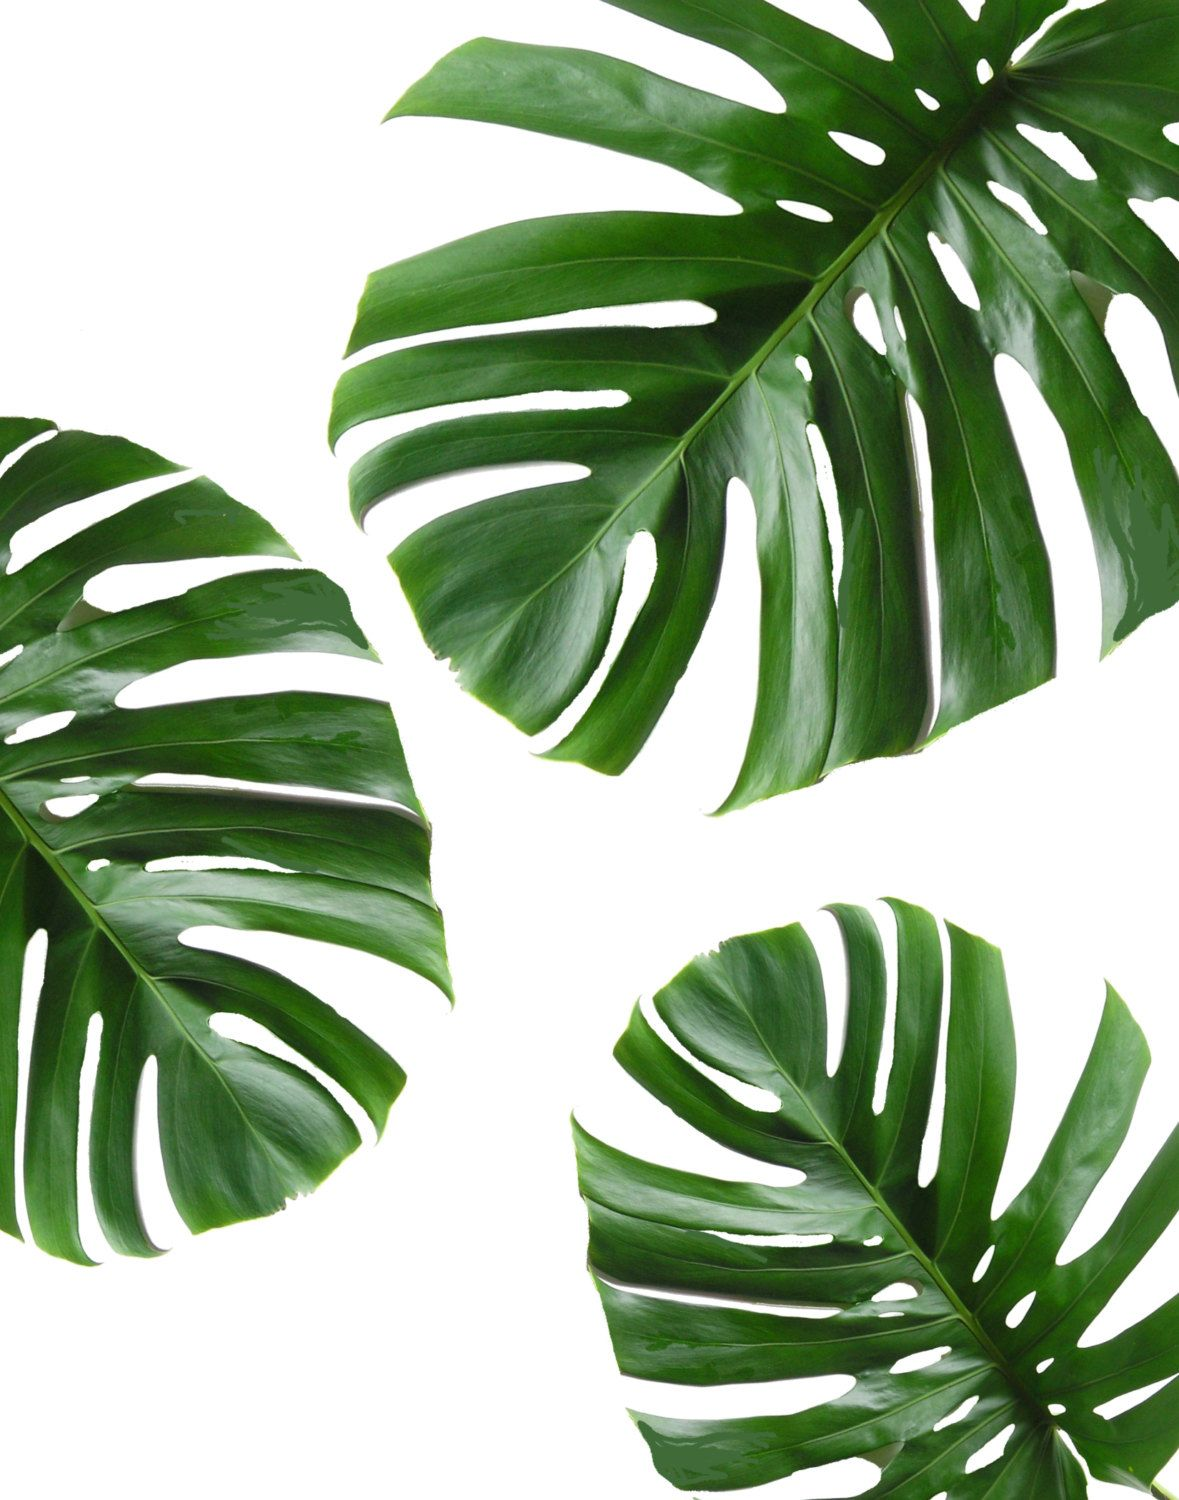 Tropical Leaf Printable Art Monstera Leaves Tropical Etsy Green Wall Decor Wall Art Canvas Painting Plant Wallpaper Leaf tropical tropical leaf nature green background beautiful flora macro plant leaves pattern autumn tree detail water spring texture sky red fresh summer natural maple leaf yellow caribbean blue bright foliage fall ocean sea abstract color beach wallpaper closeup drop vibrant coast leaf vein greenery. tropical leaf printable art monstera